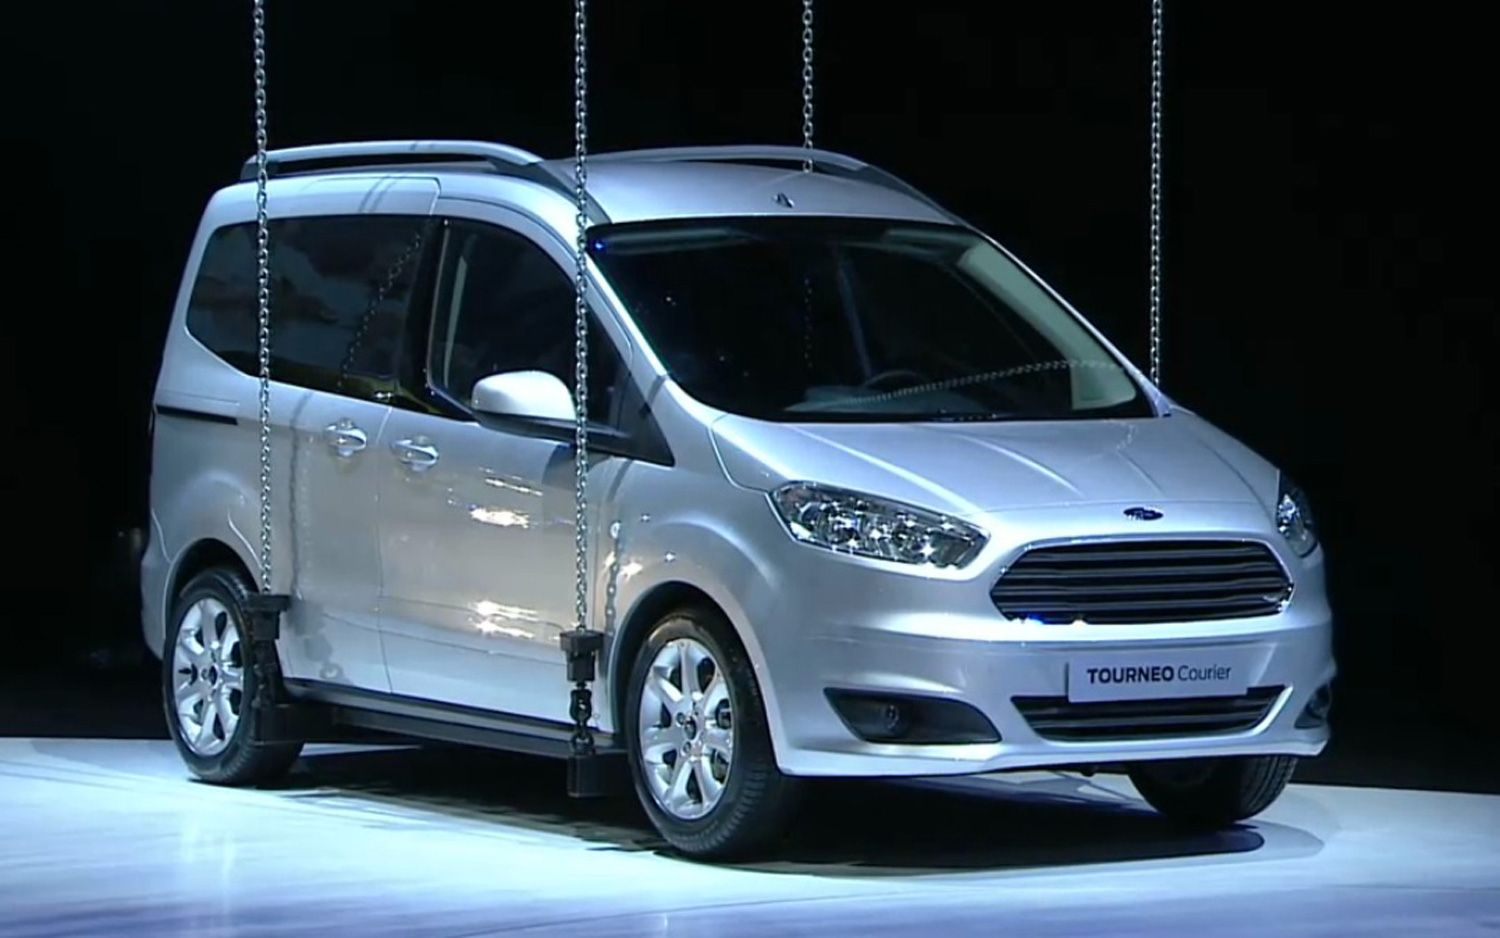 Ford tourneo courier pictures to pin on pinterest - A Dan Z Ye 2012 Paris Motor Show Ford Tourneo Courier